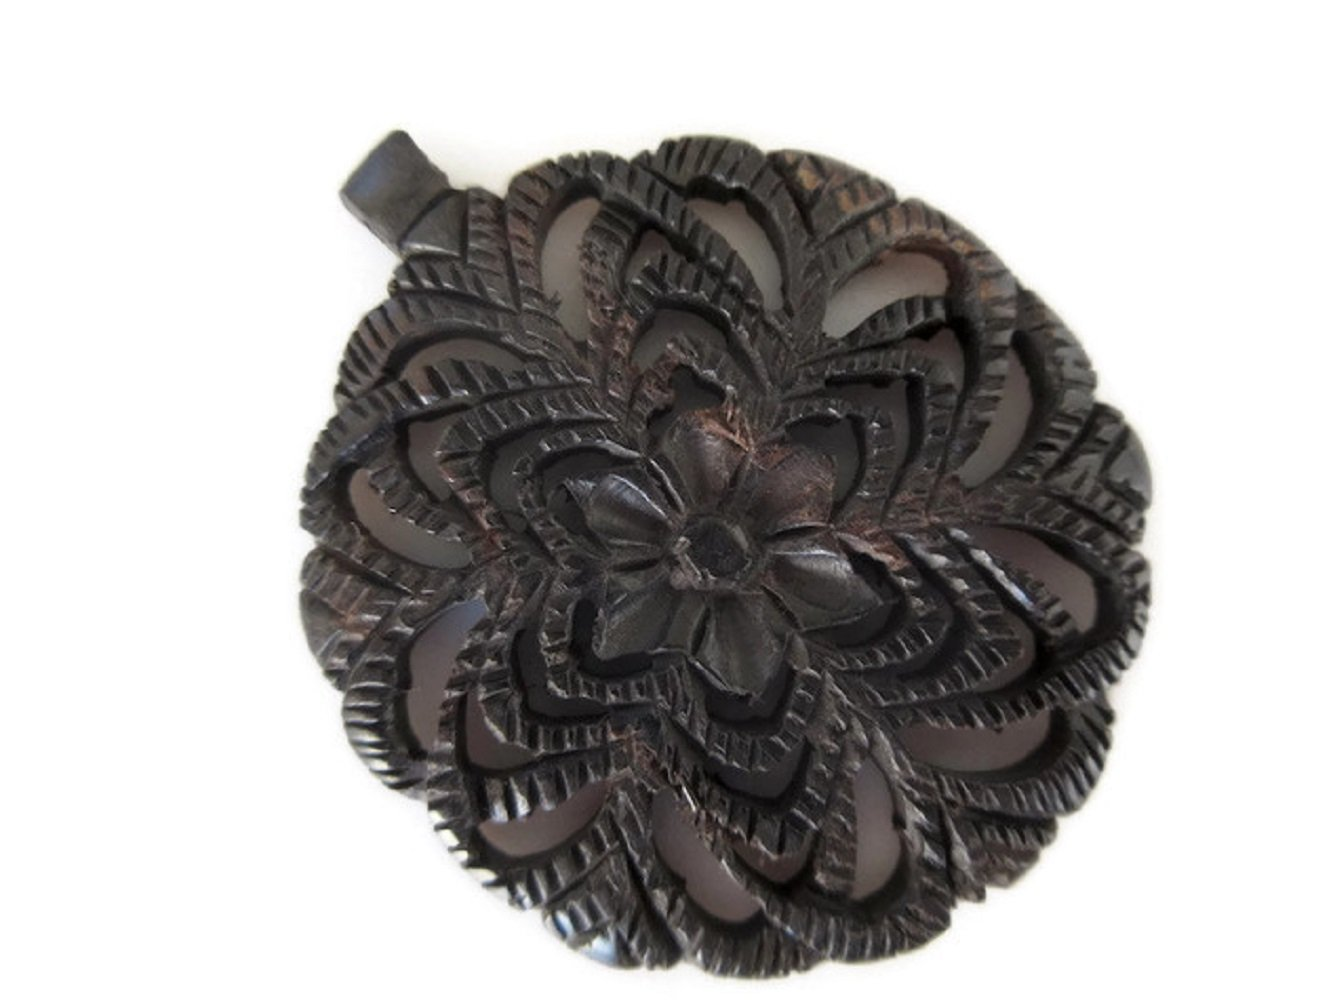 Hand Carved Ebony Wood Flower Pendant, Handmade Flower Pattern Pendant/Necklace, Wood Art And Craft Supplies Jewelry, GDS1046/11 (20 Pieces)